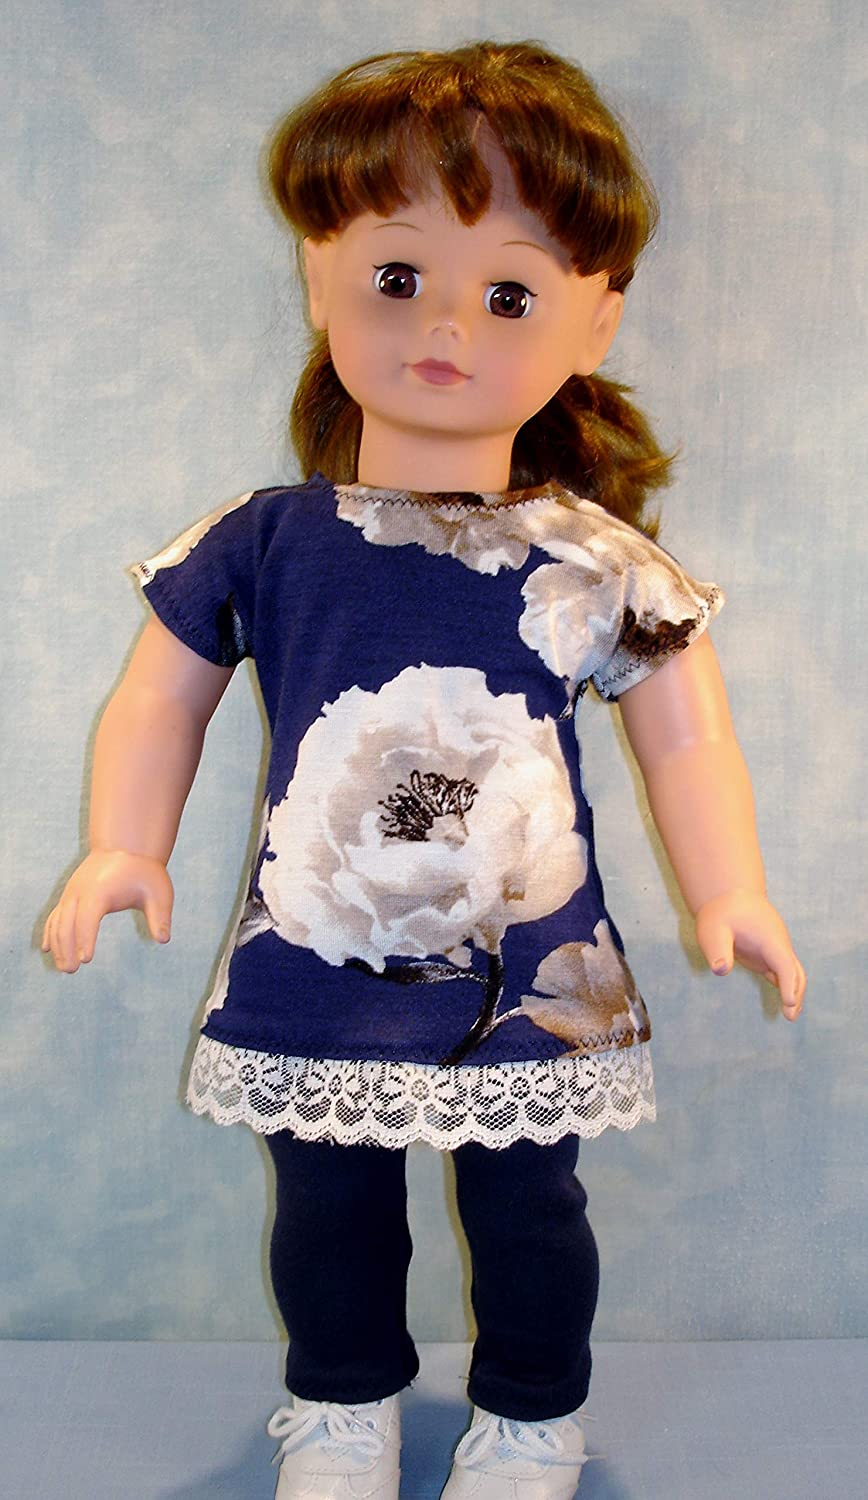 18 Inch Doll Clothes Navy Floral Tunic and Navy Leggings Outfit handmade by Jane Ellen to fit 18 inch dolls